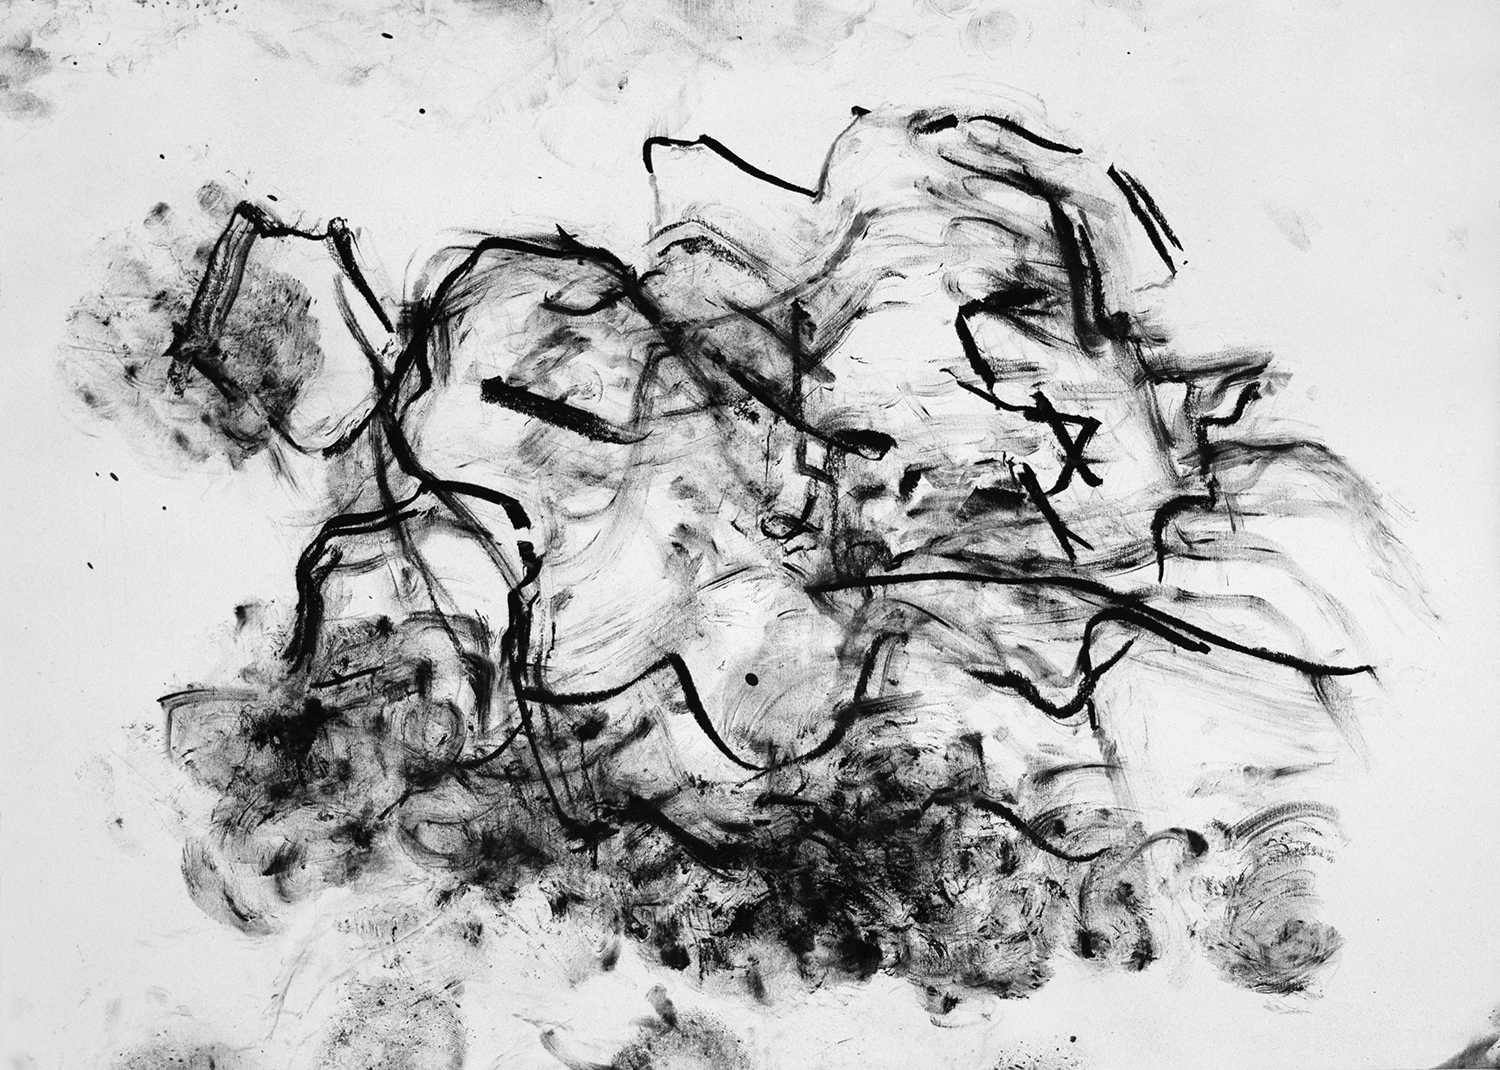 Untitled, 2016, Charcoal on paper, 18 x 24 in.